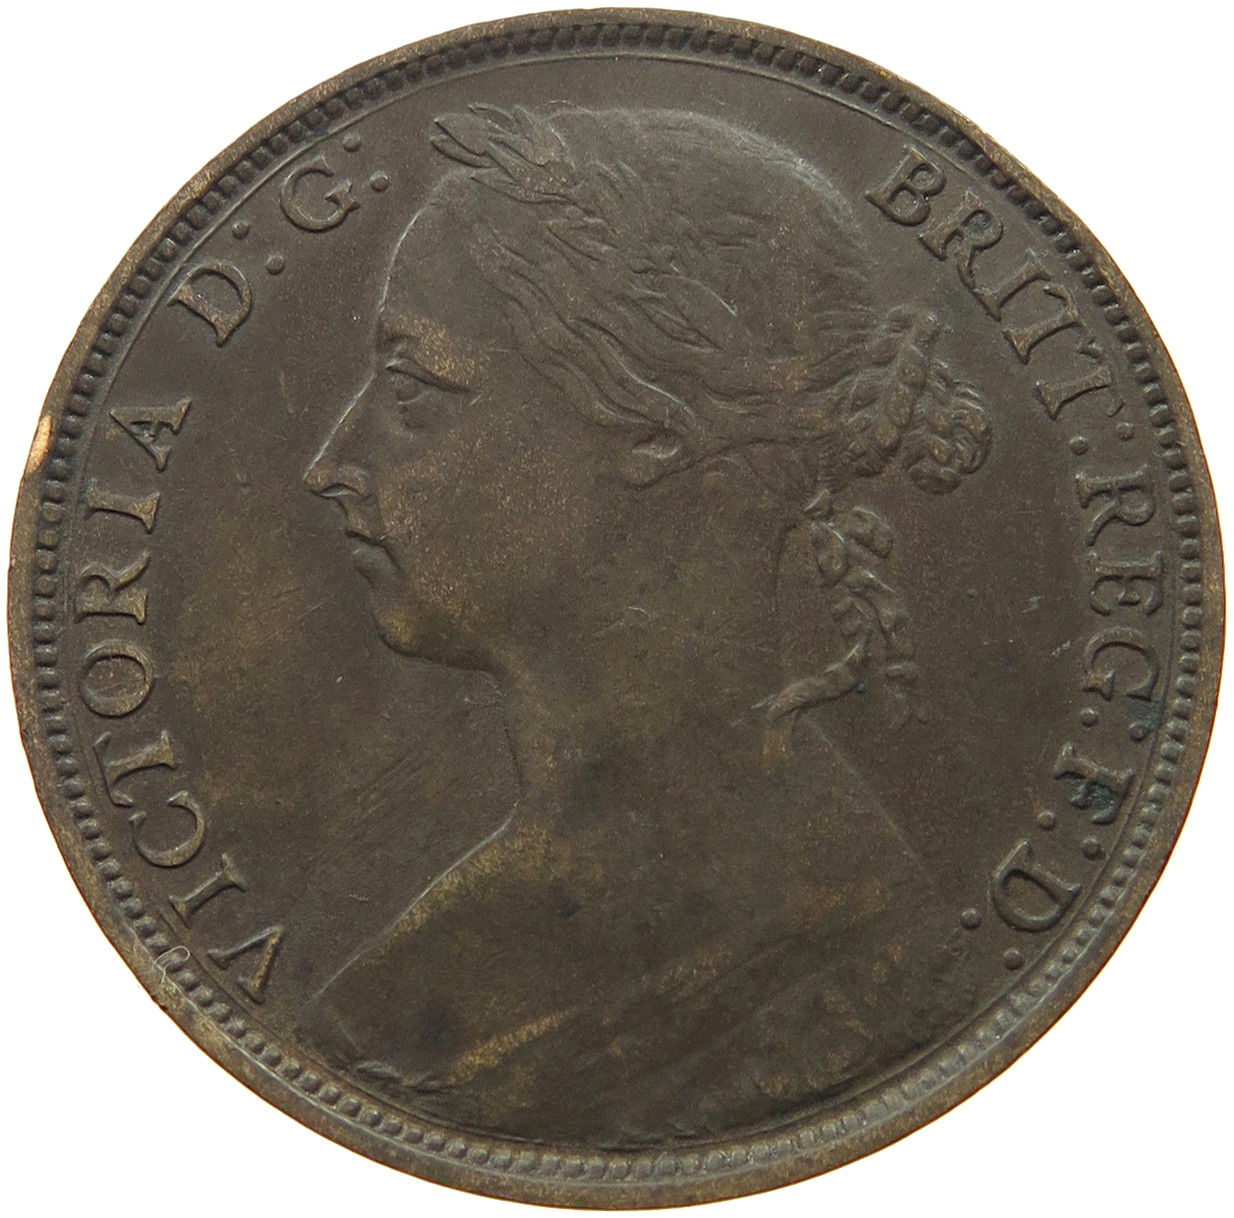 Penny 1886: Photo Great Britain Penny 1886 Victoria